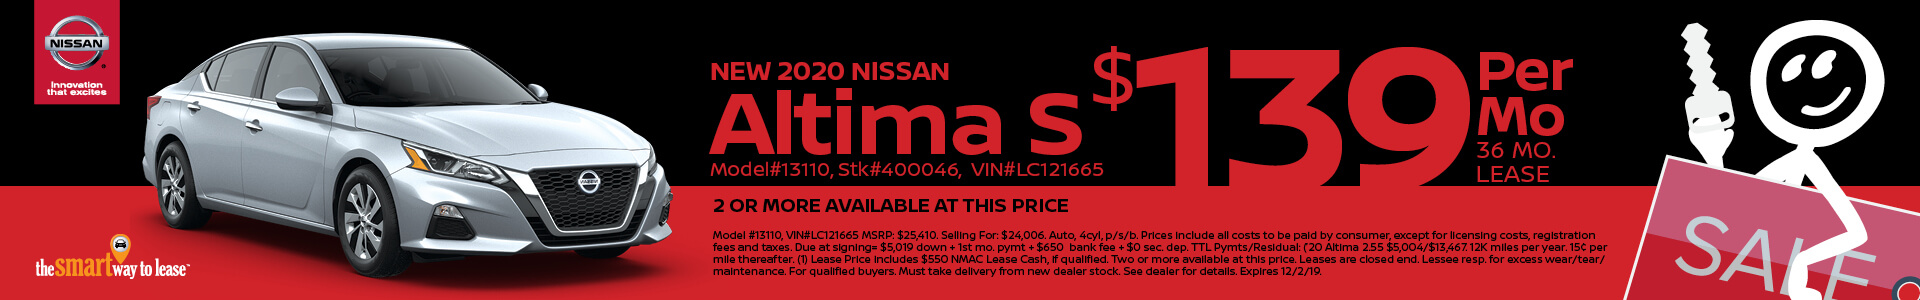 2020 Nissan Altima 2.5 Lease for $139